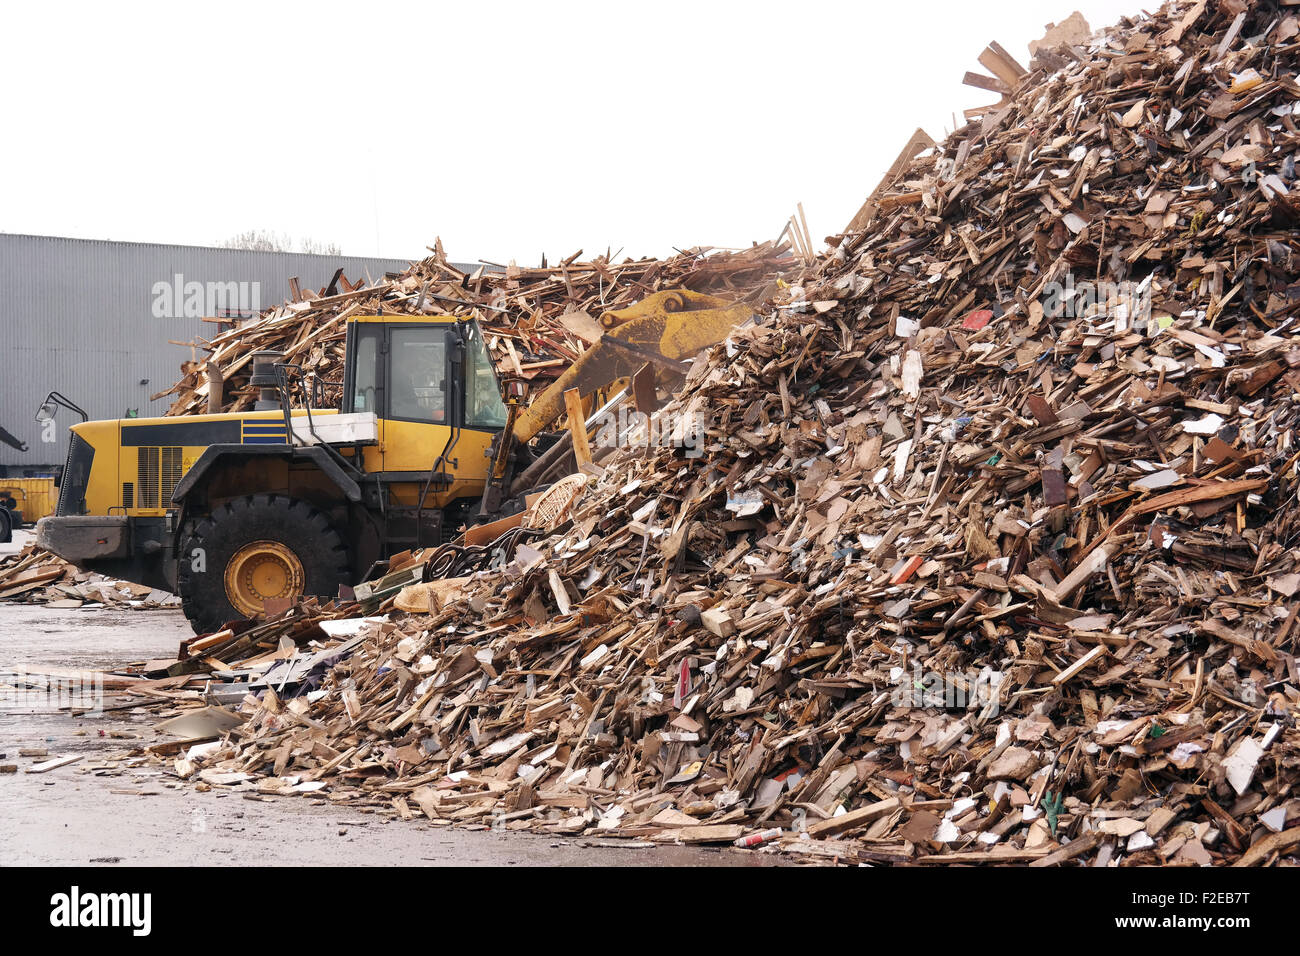 Shovel accumulate a pile of woodchips for use as a biomass solid fuel. - Stock Image